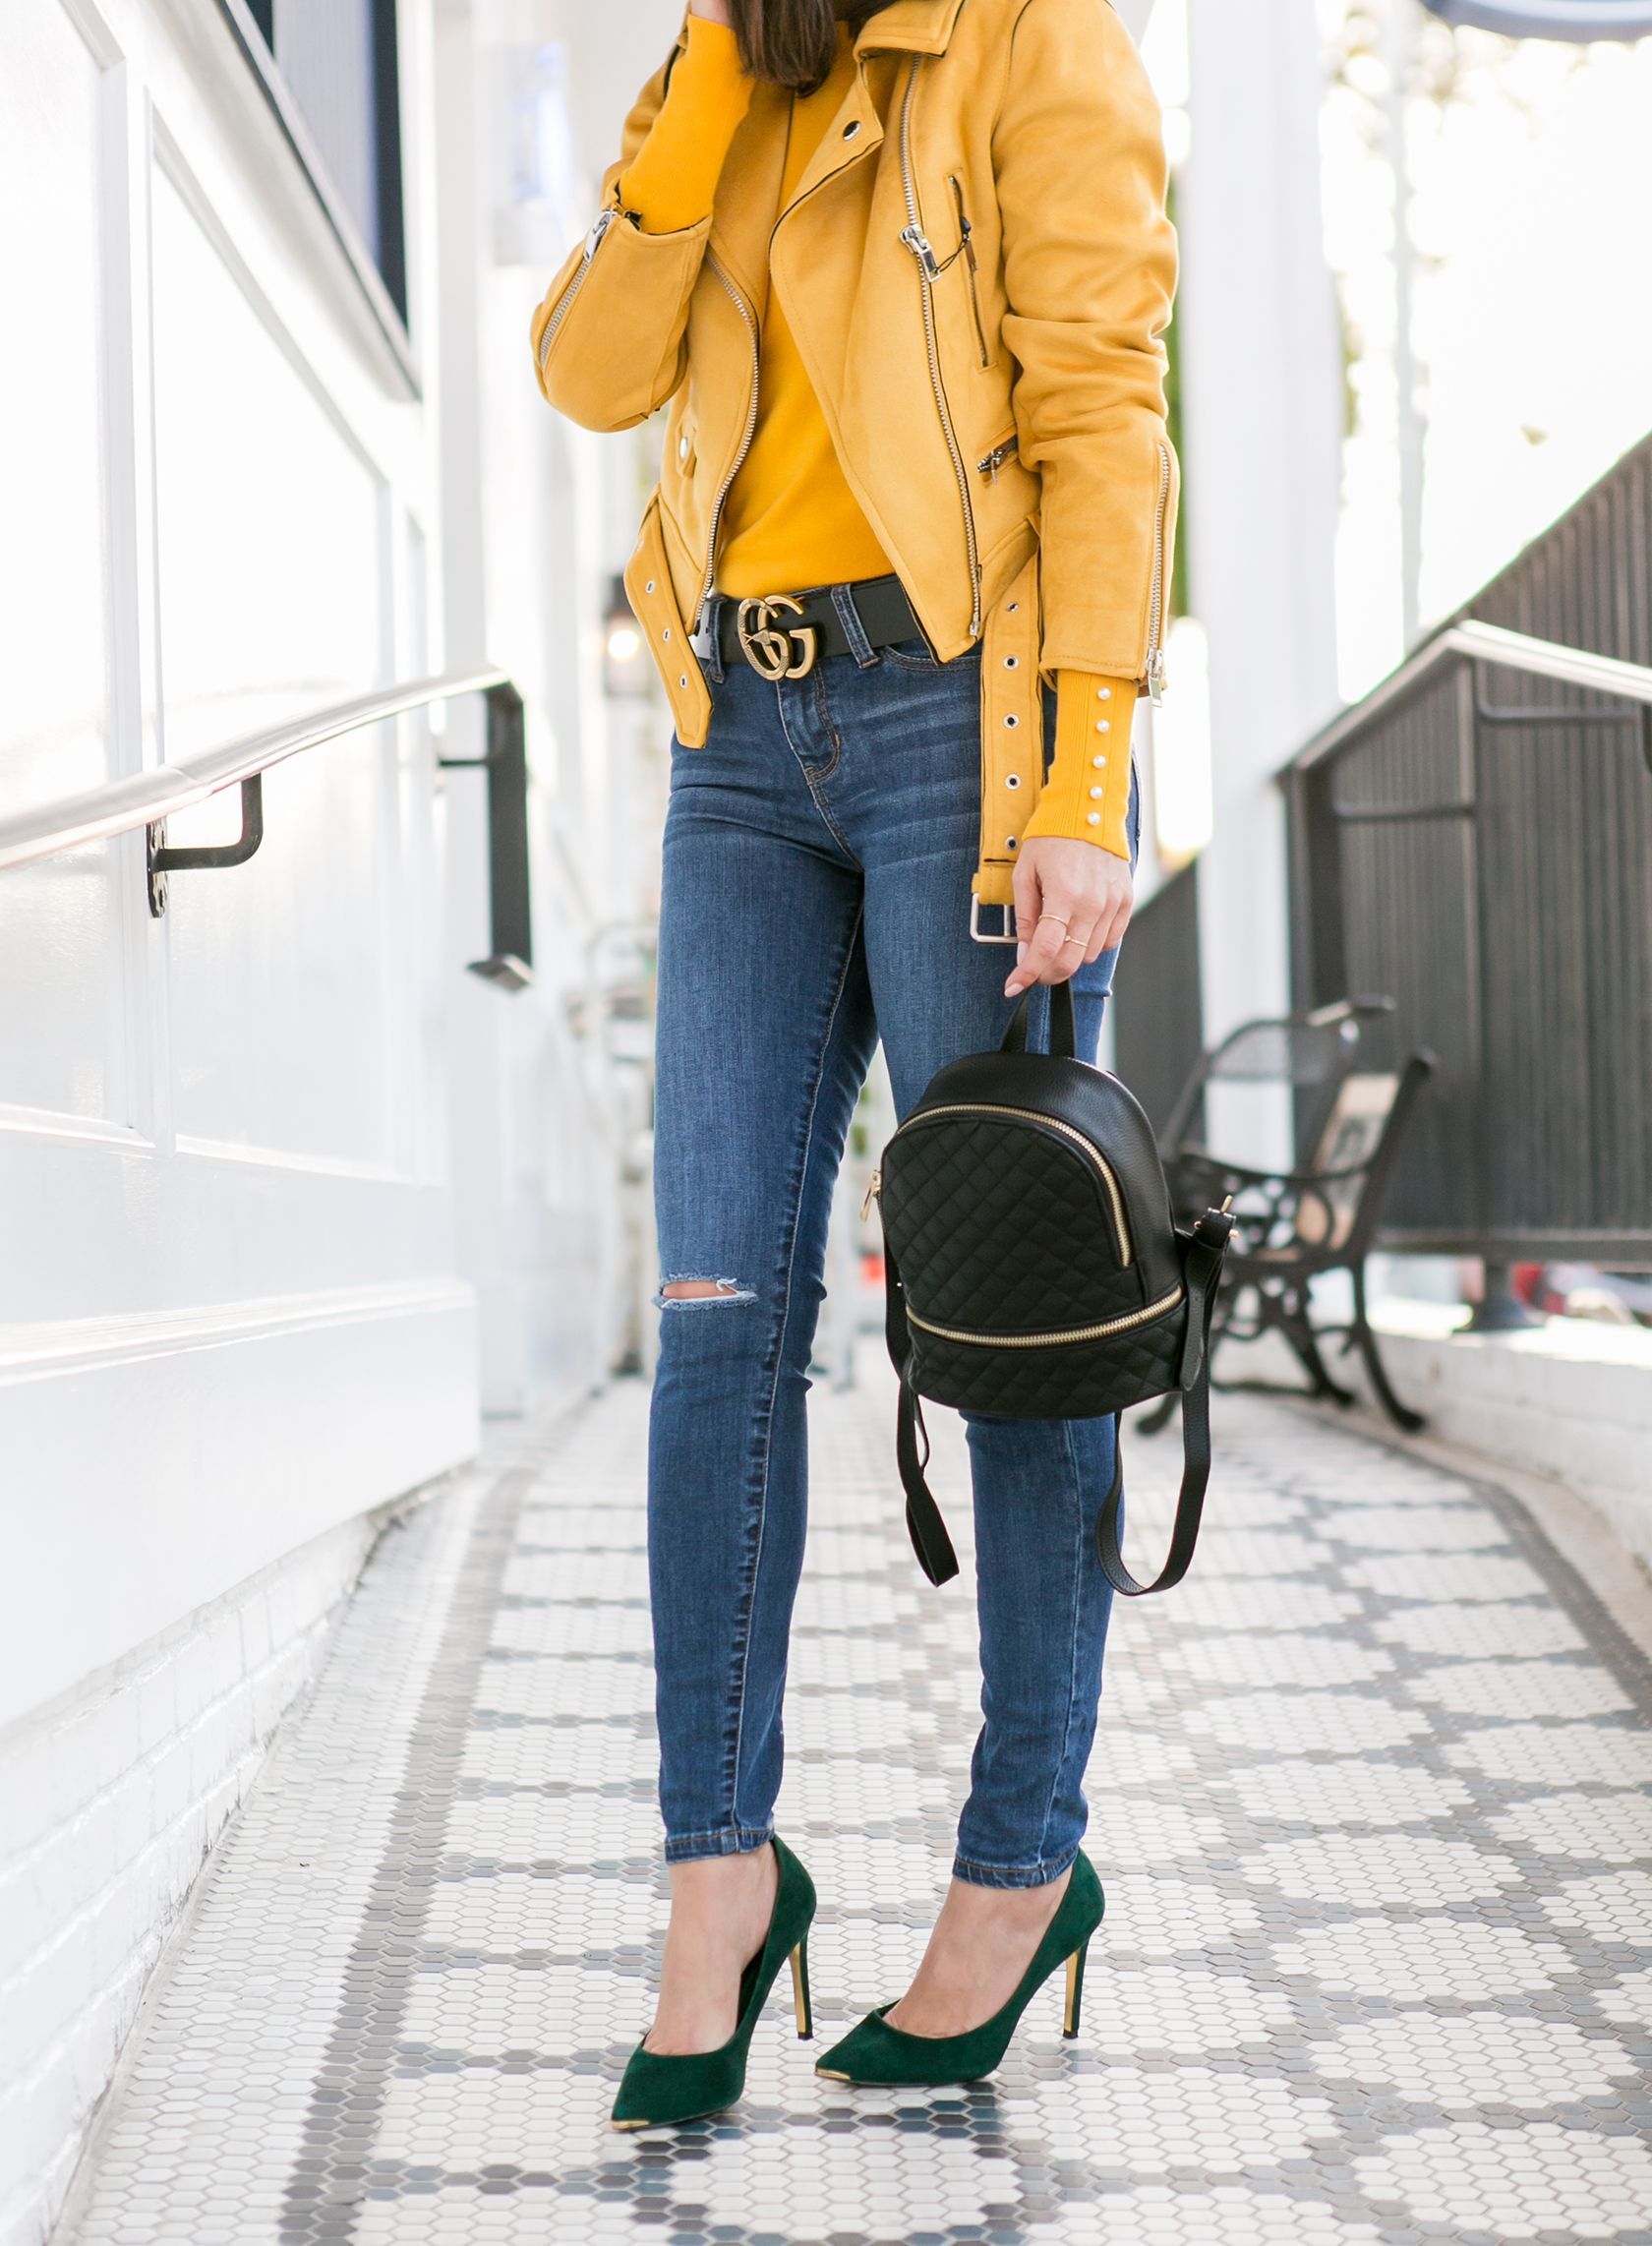 4ec507db43d Sydne Style wears Gucci snake belt for fall outfit ideas with denim  yellow   denim  jeans  gucci